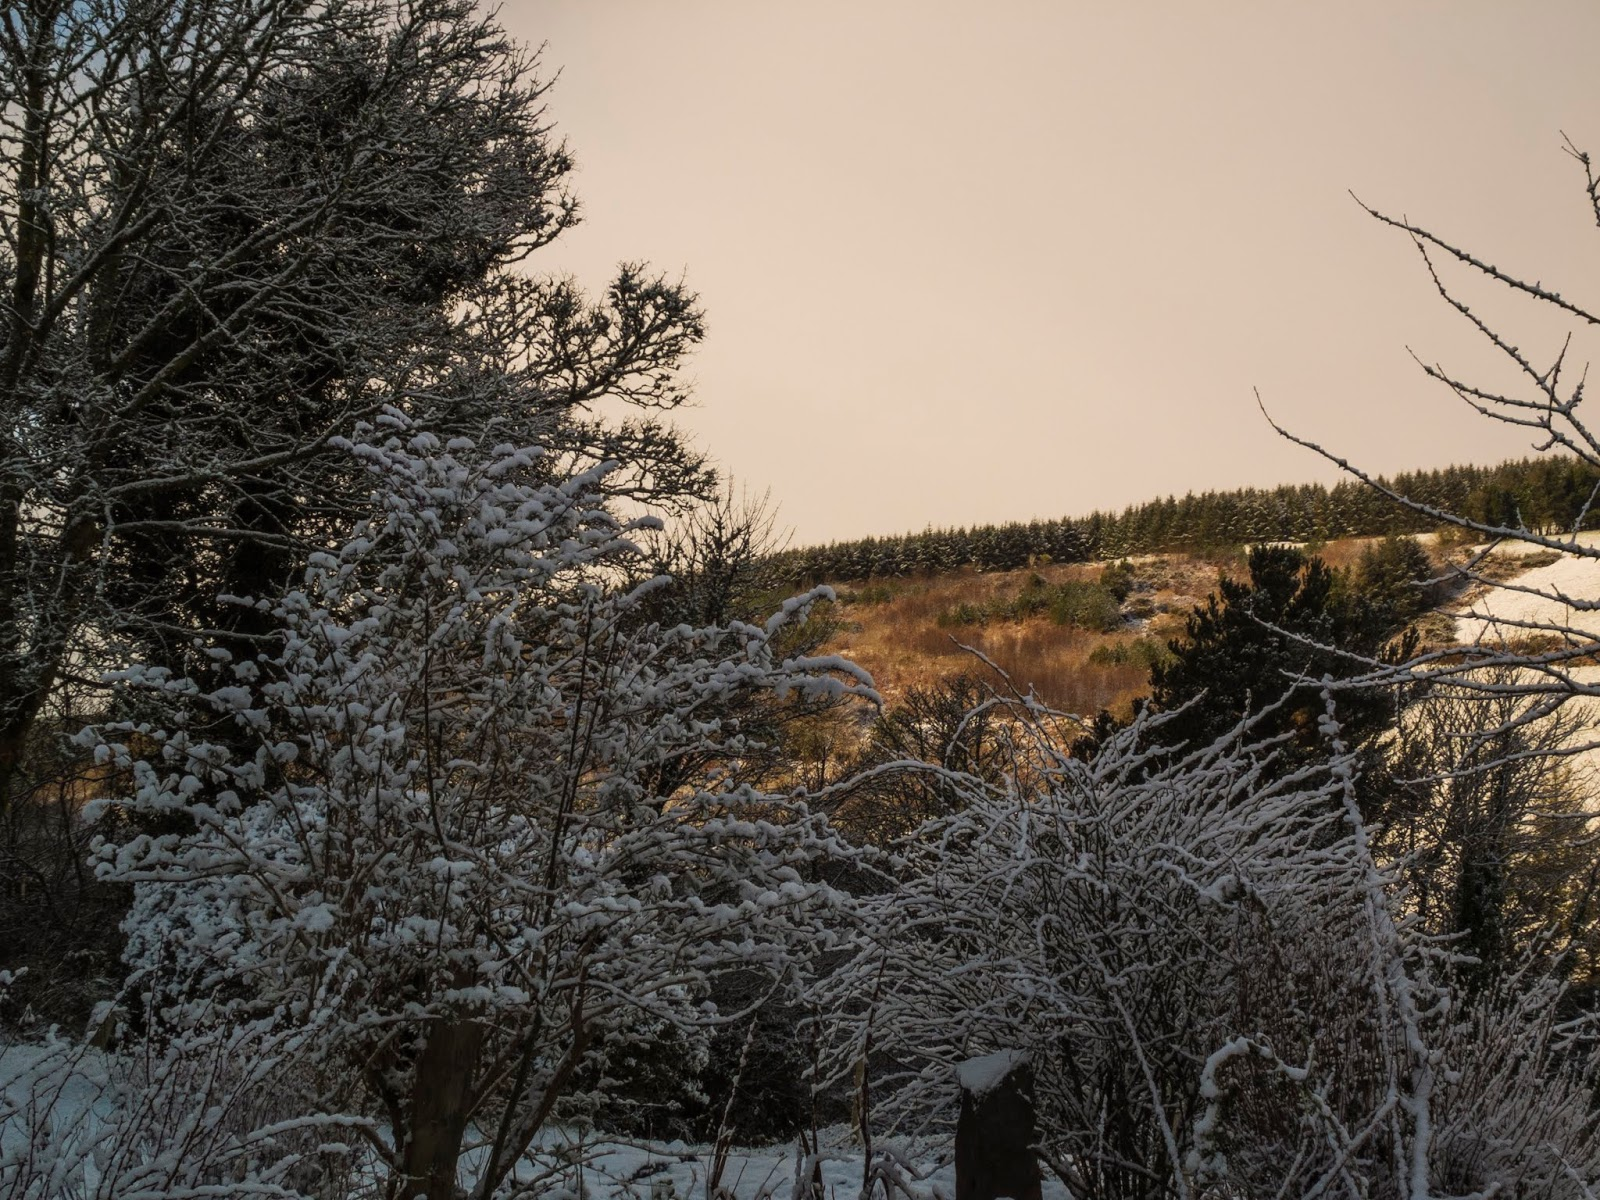 Snowy bushes in the foreground with a sunset hillside in the background.